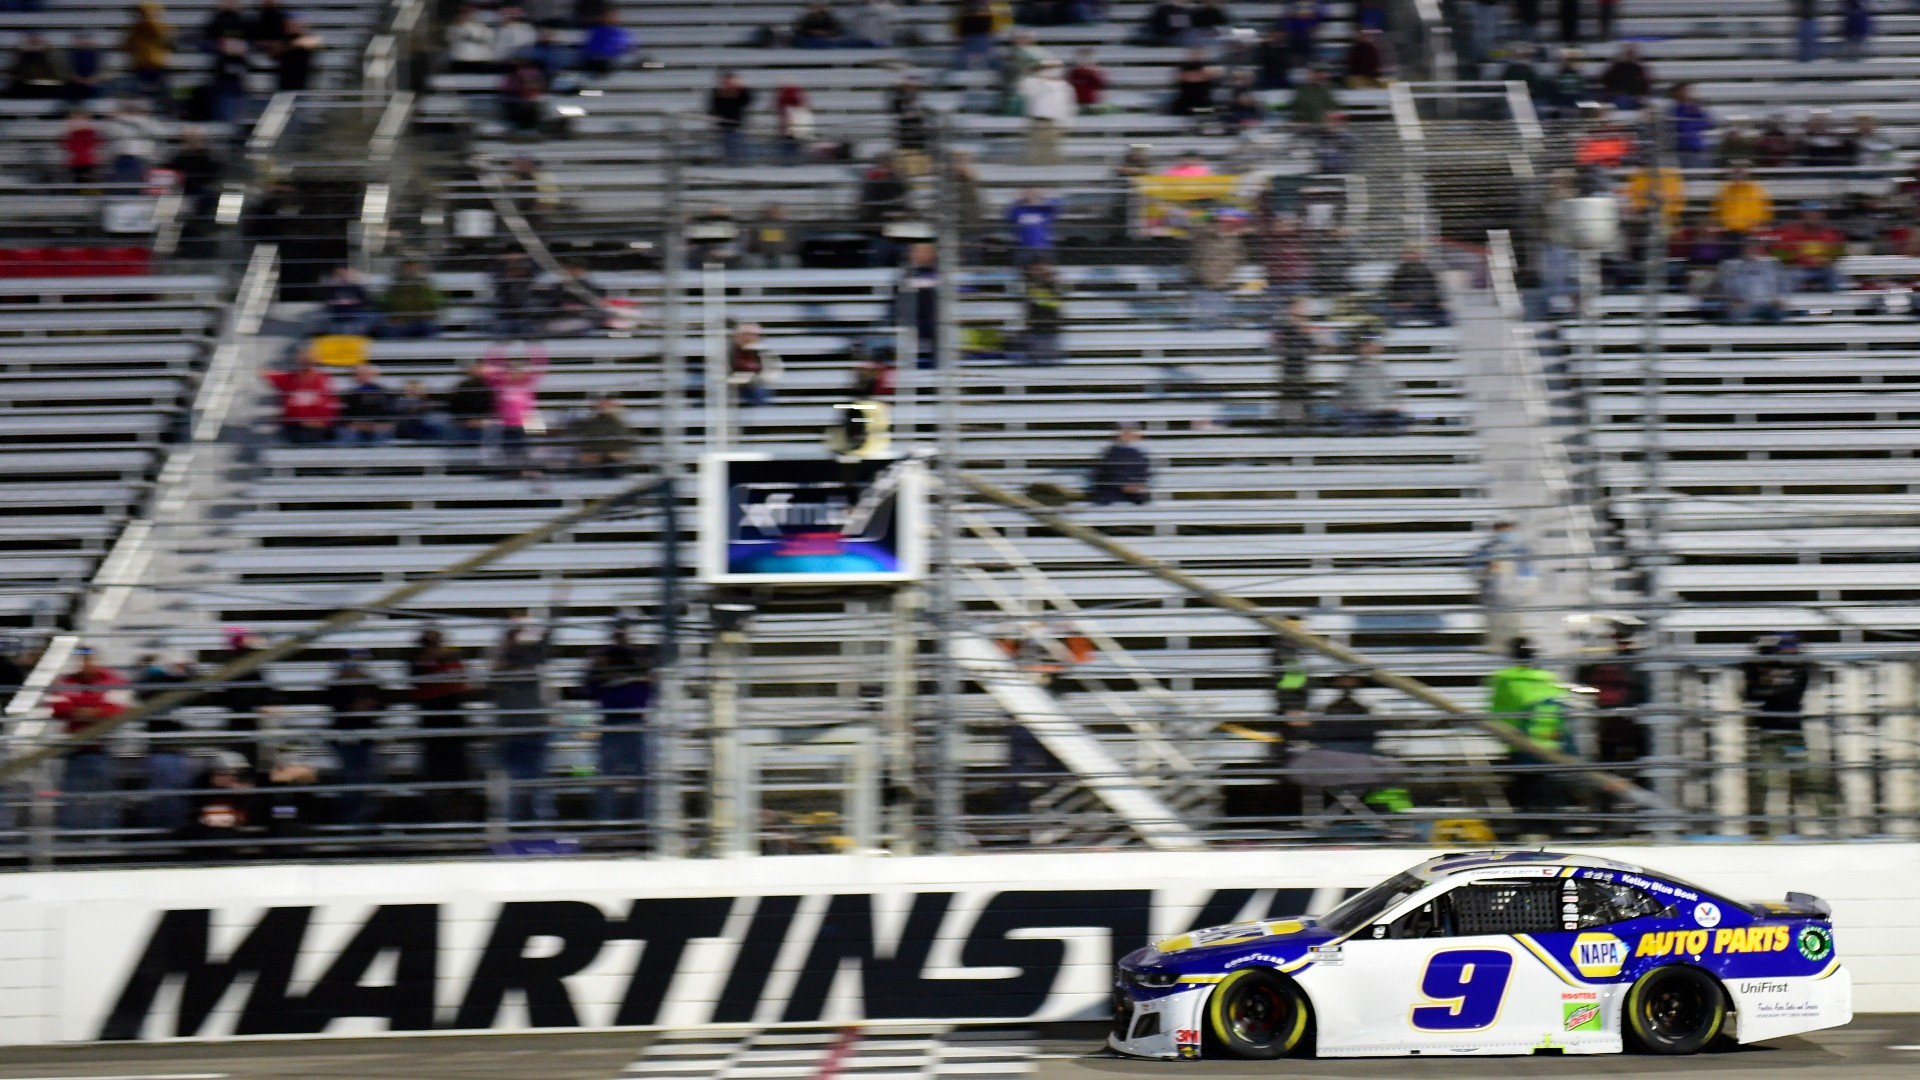 NASCAR Martinsville Live Updates, Results, Highlights of the 2021 Night Race